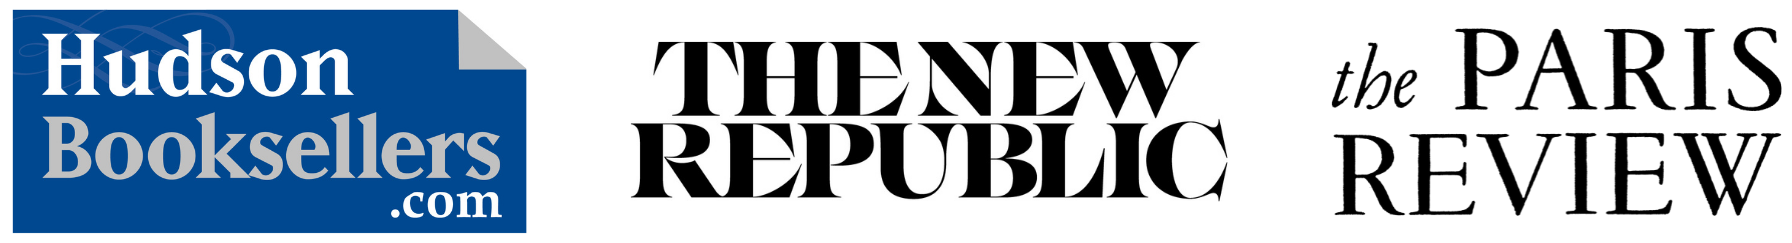 Logos of media partners: Hudson Booksellers, The New Republic, and The Paris Review